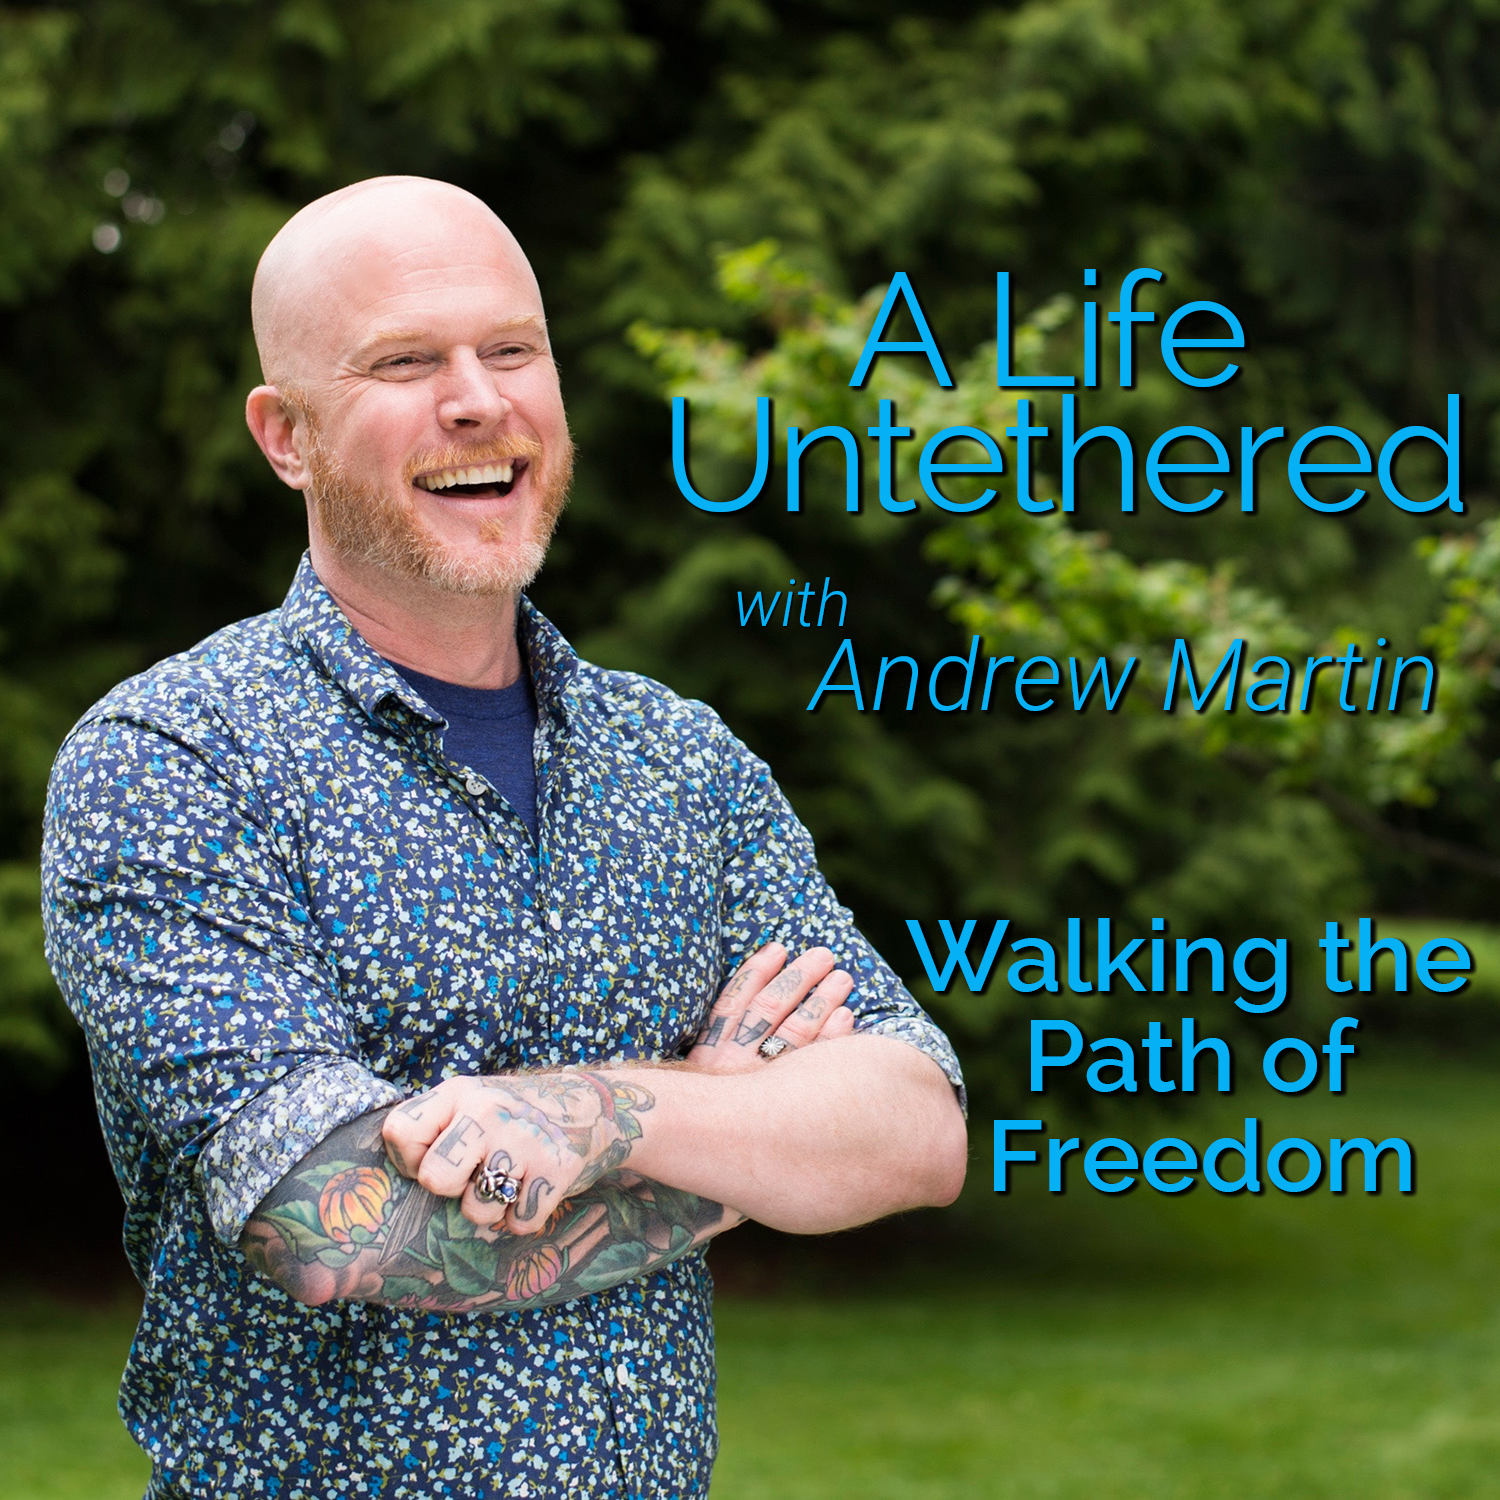 A Life Untethered with Andrew Martin